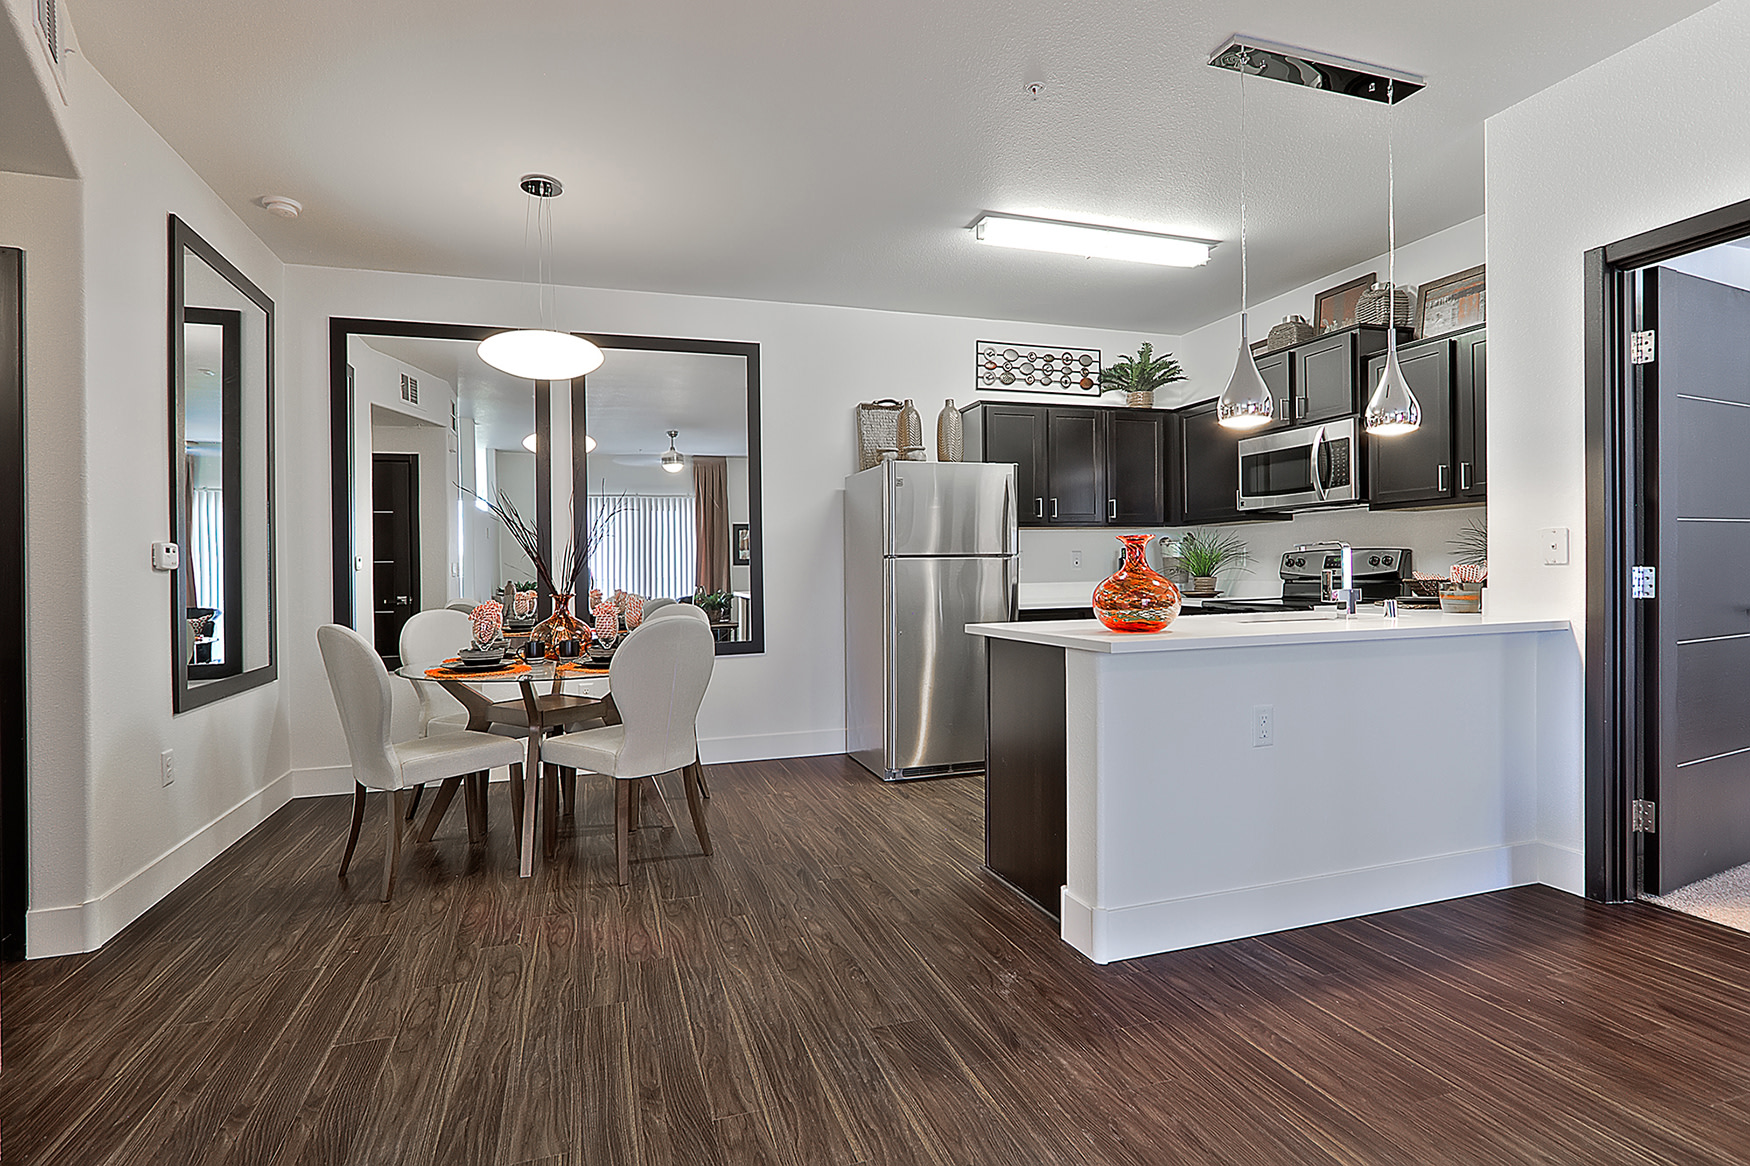 Tivoli Apartments In Las Vegas Top 138 1 Bedroom Apartments For Rent In Summerlin South Nv